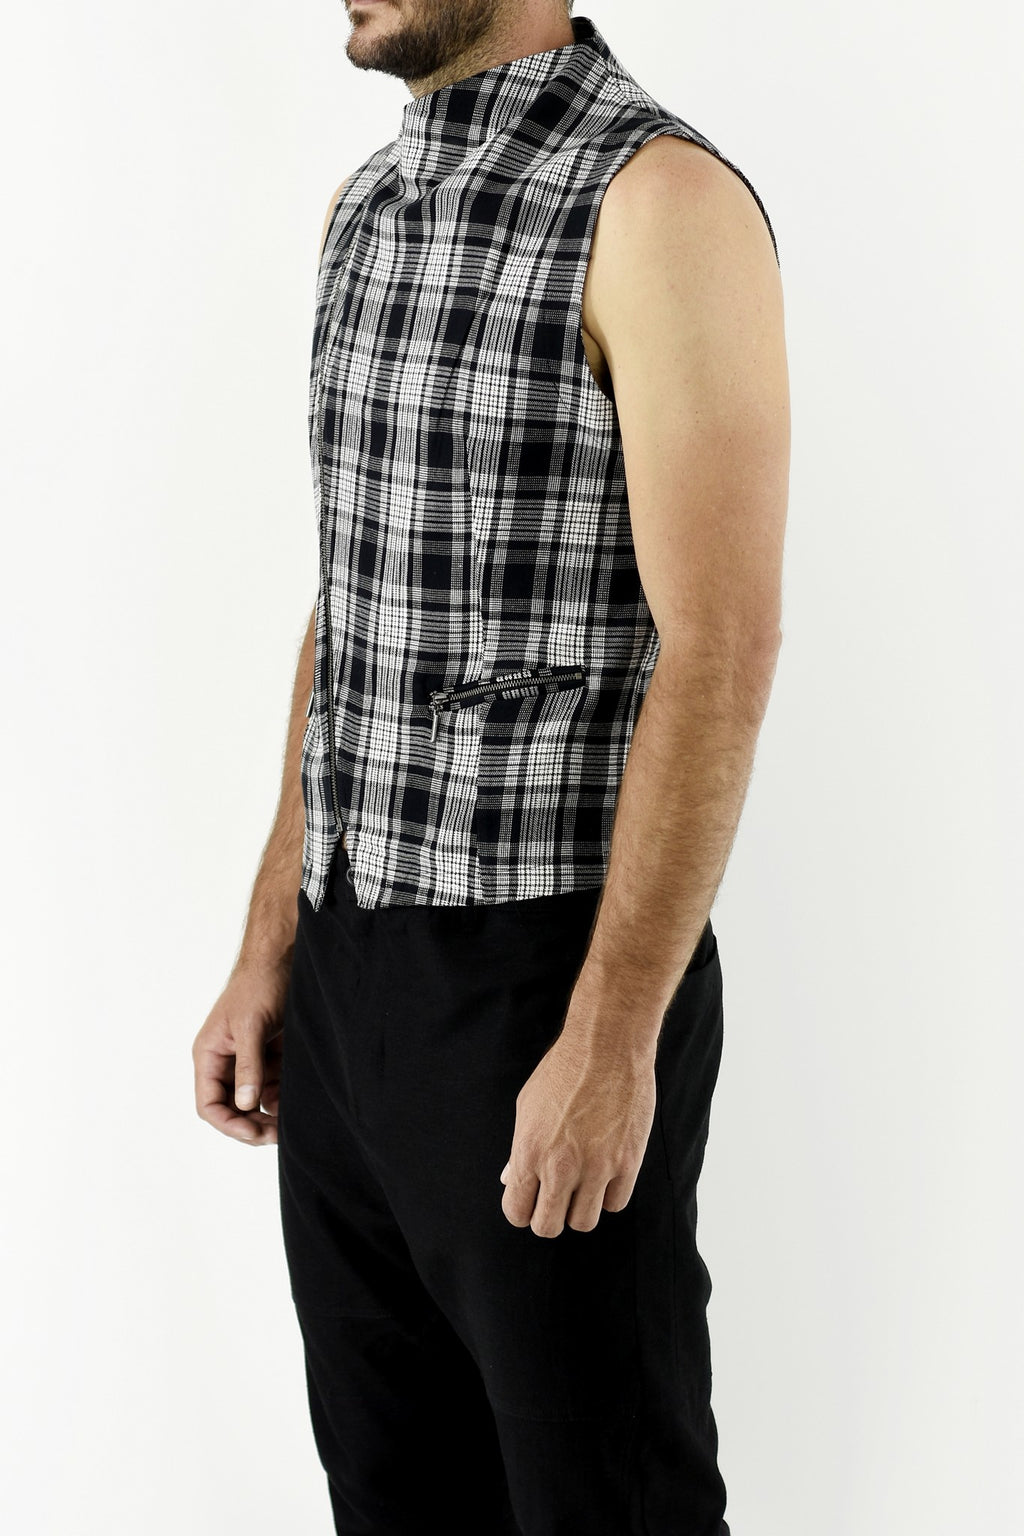 Mens Asymmetric Waistcoat in Black/White Check ZG5233